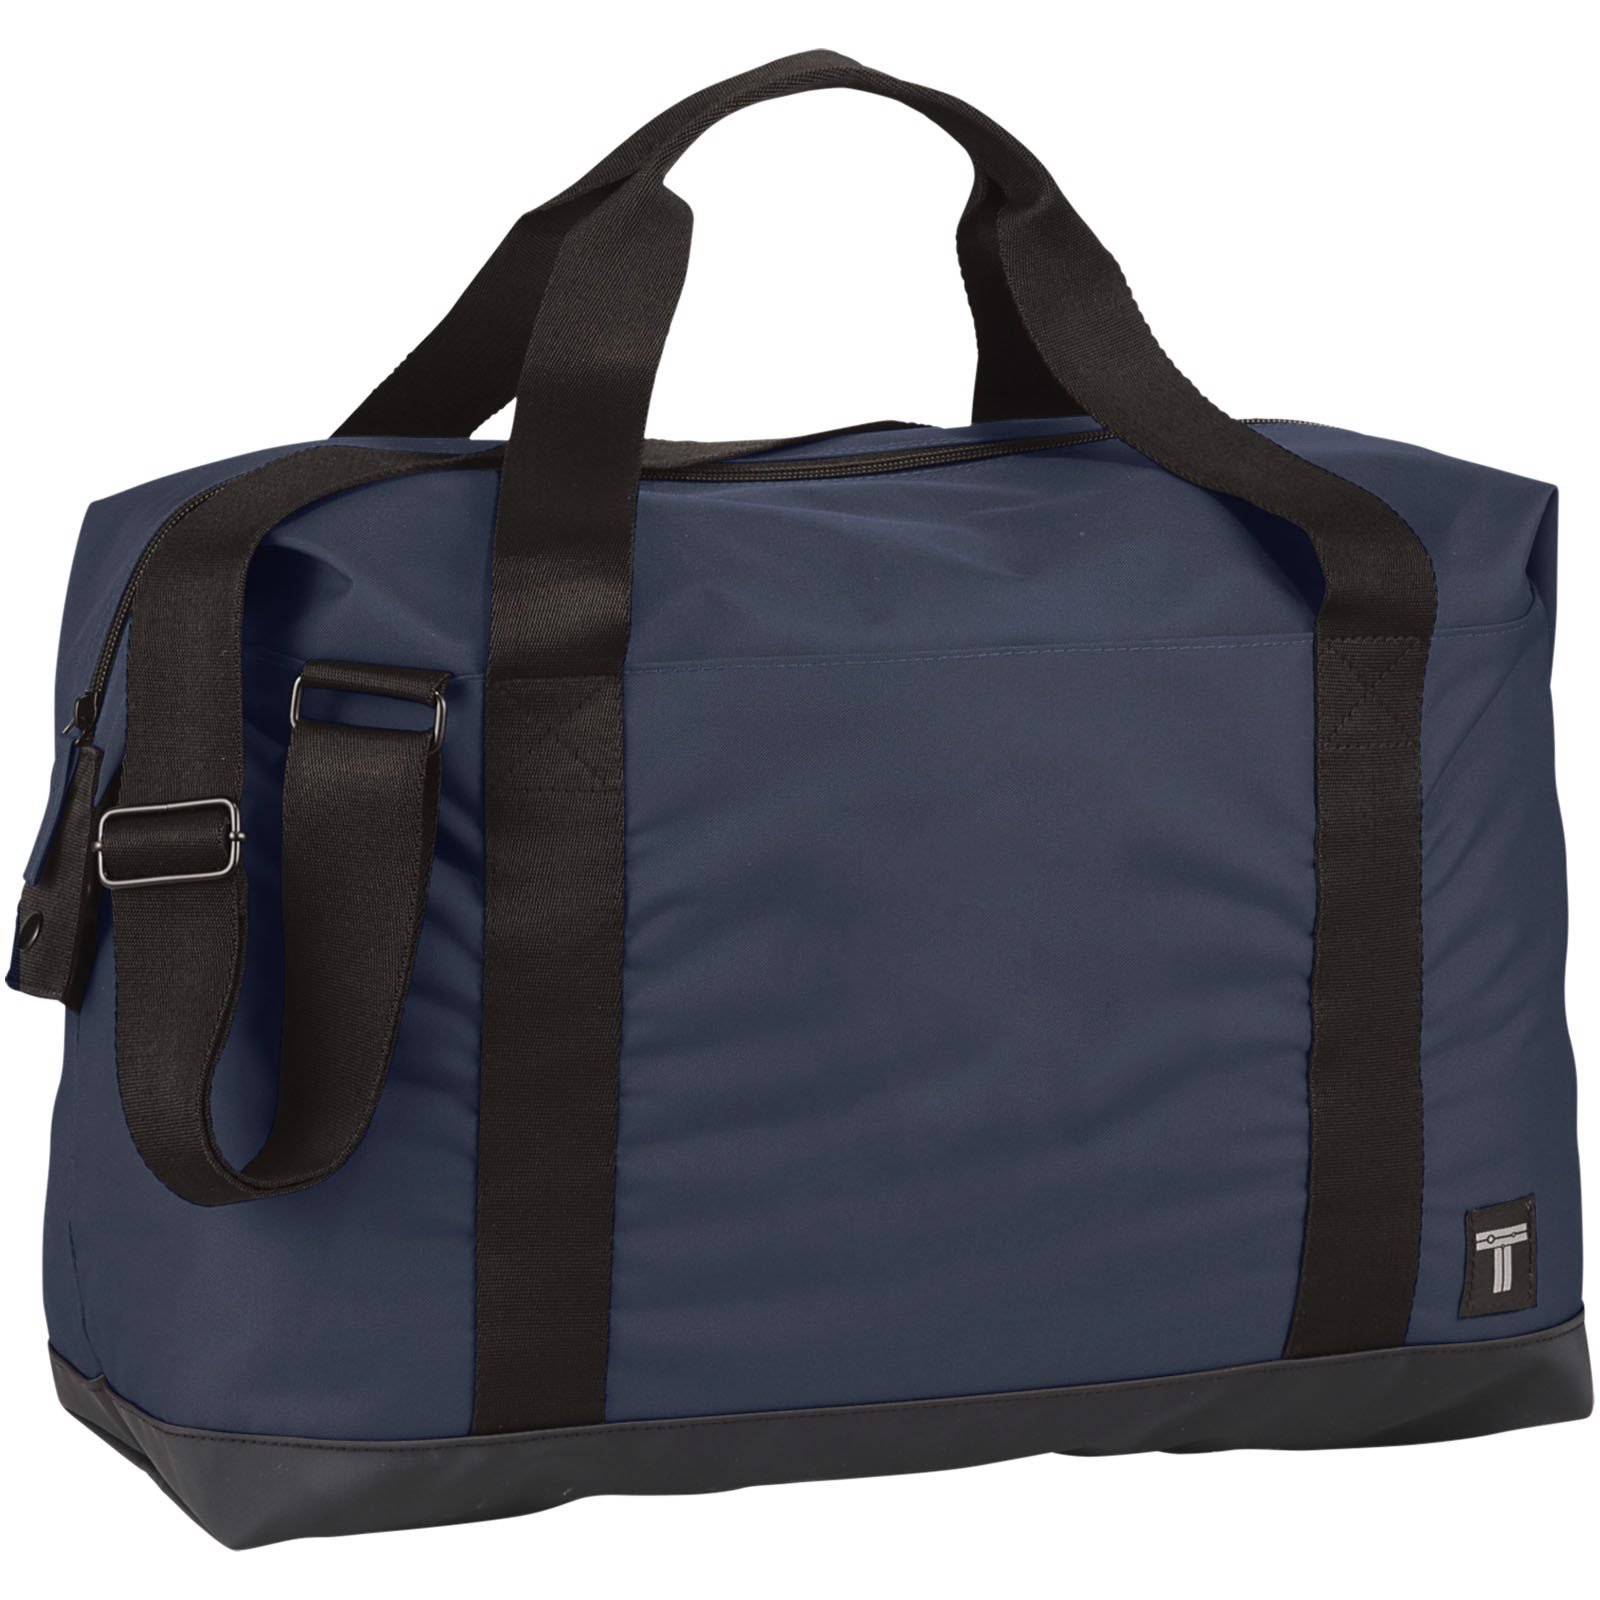 "Day 17"" duffel bag - Navy"